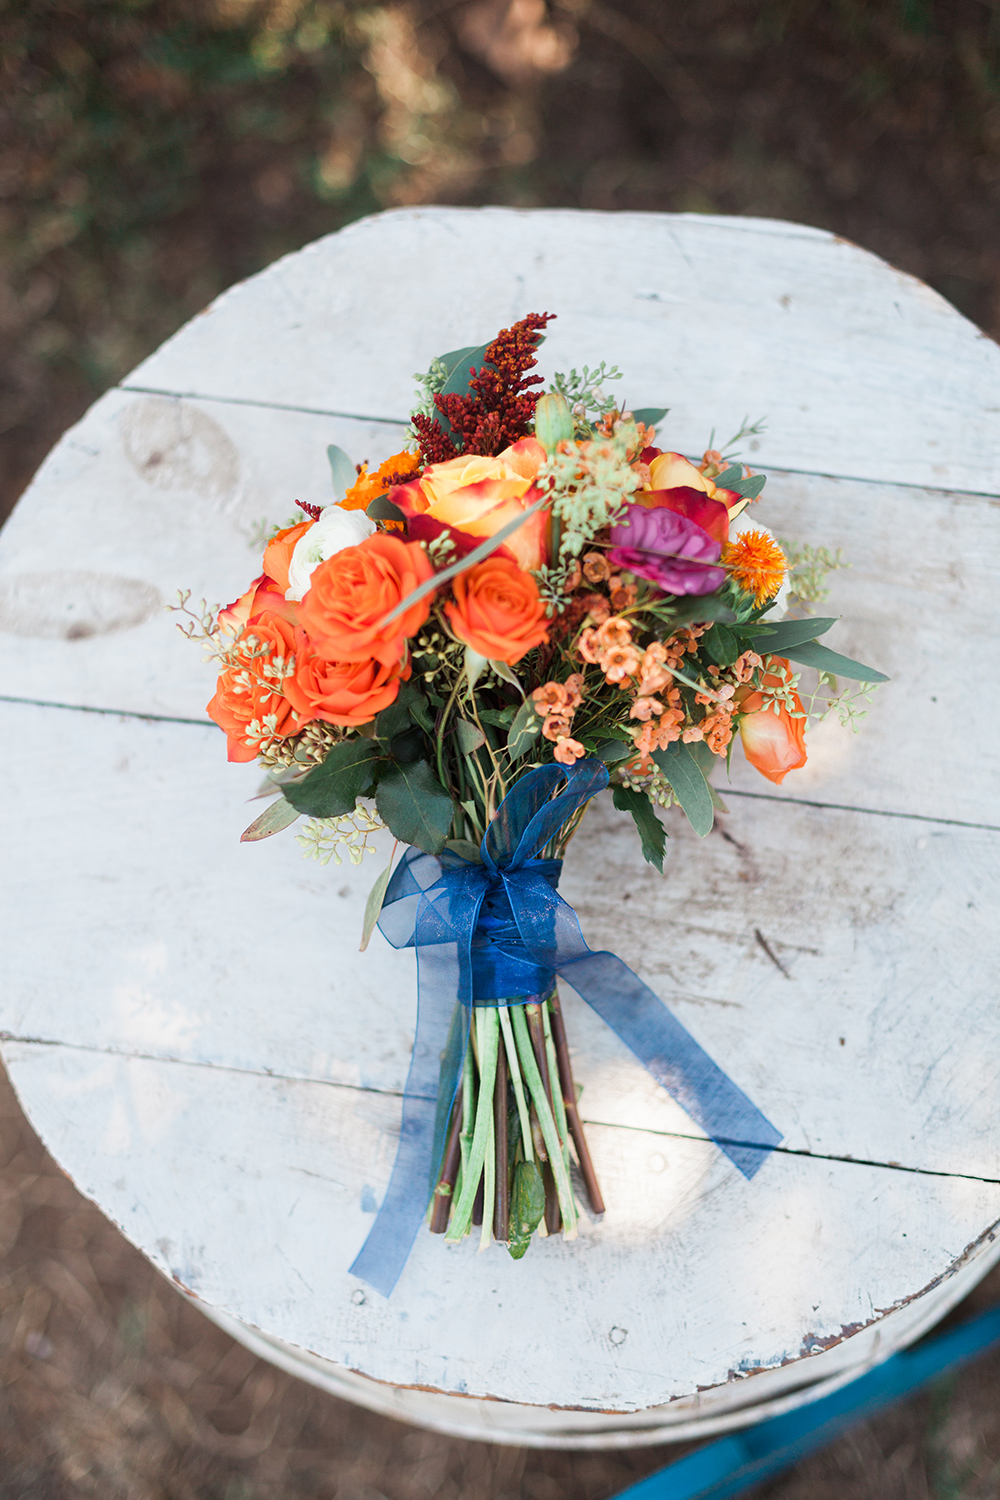 Planning a wedding - colorful wedding bouquet